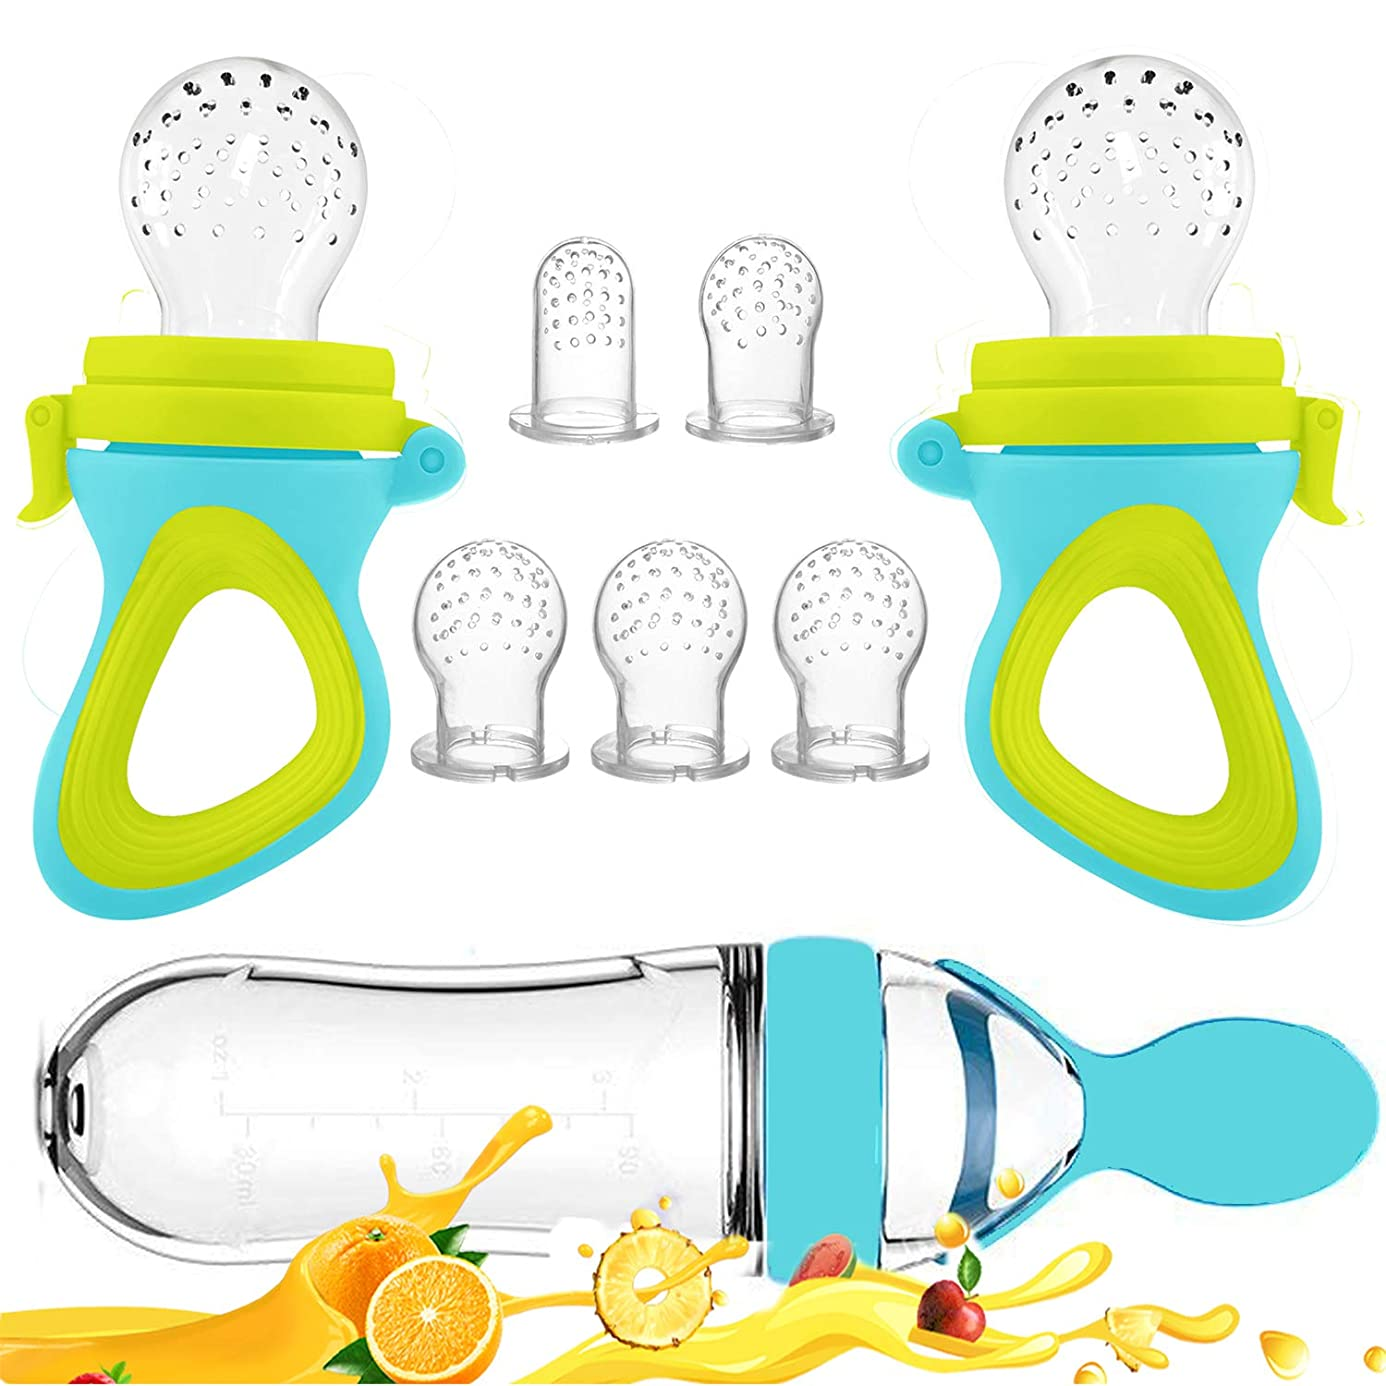 Baby Food Feeder, Fresh Food - 2 Pack Fruit Feeder Pacifier, 5 Different Sized Silicone Teething Pacifiers | 1 Pack Baby Food Dispensing Spoon | Baby Fruit Teether | Baby Feeders Silicone